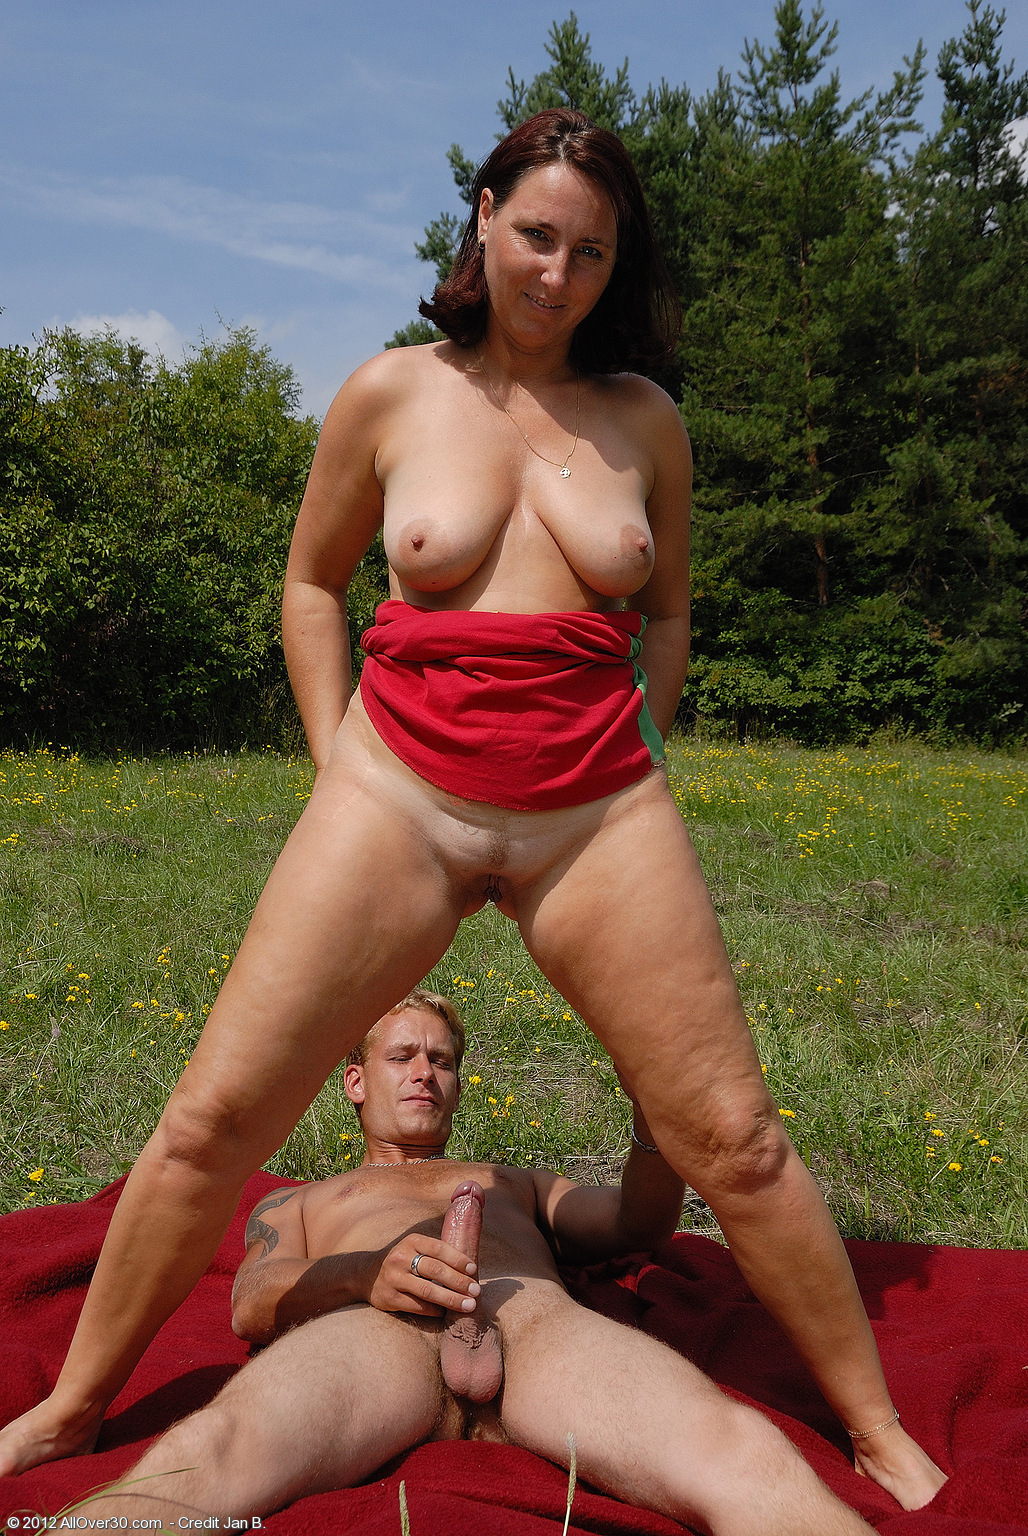 Fucked outdoors